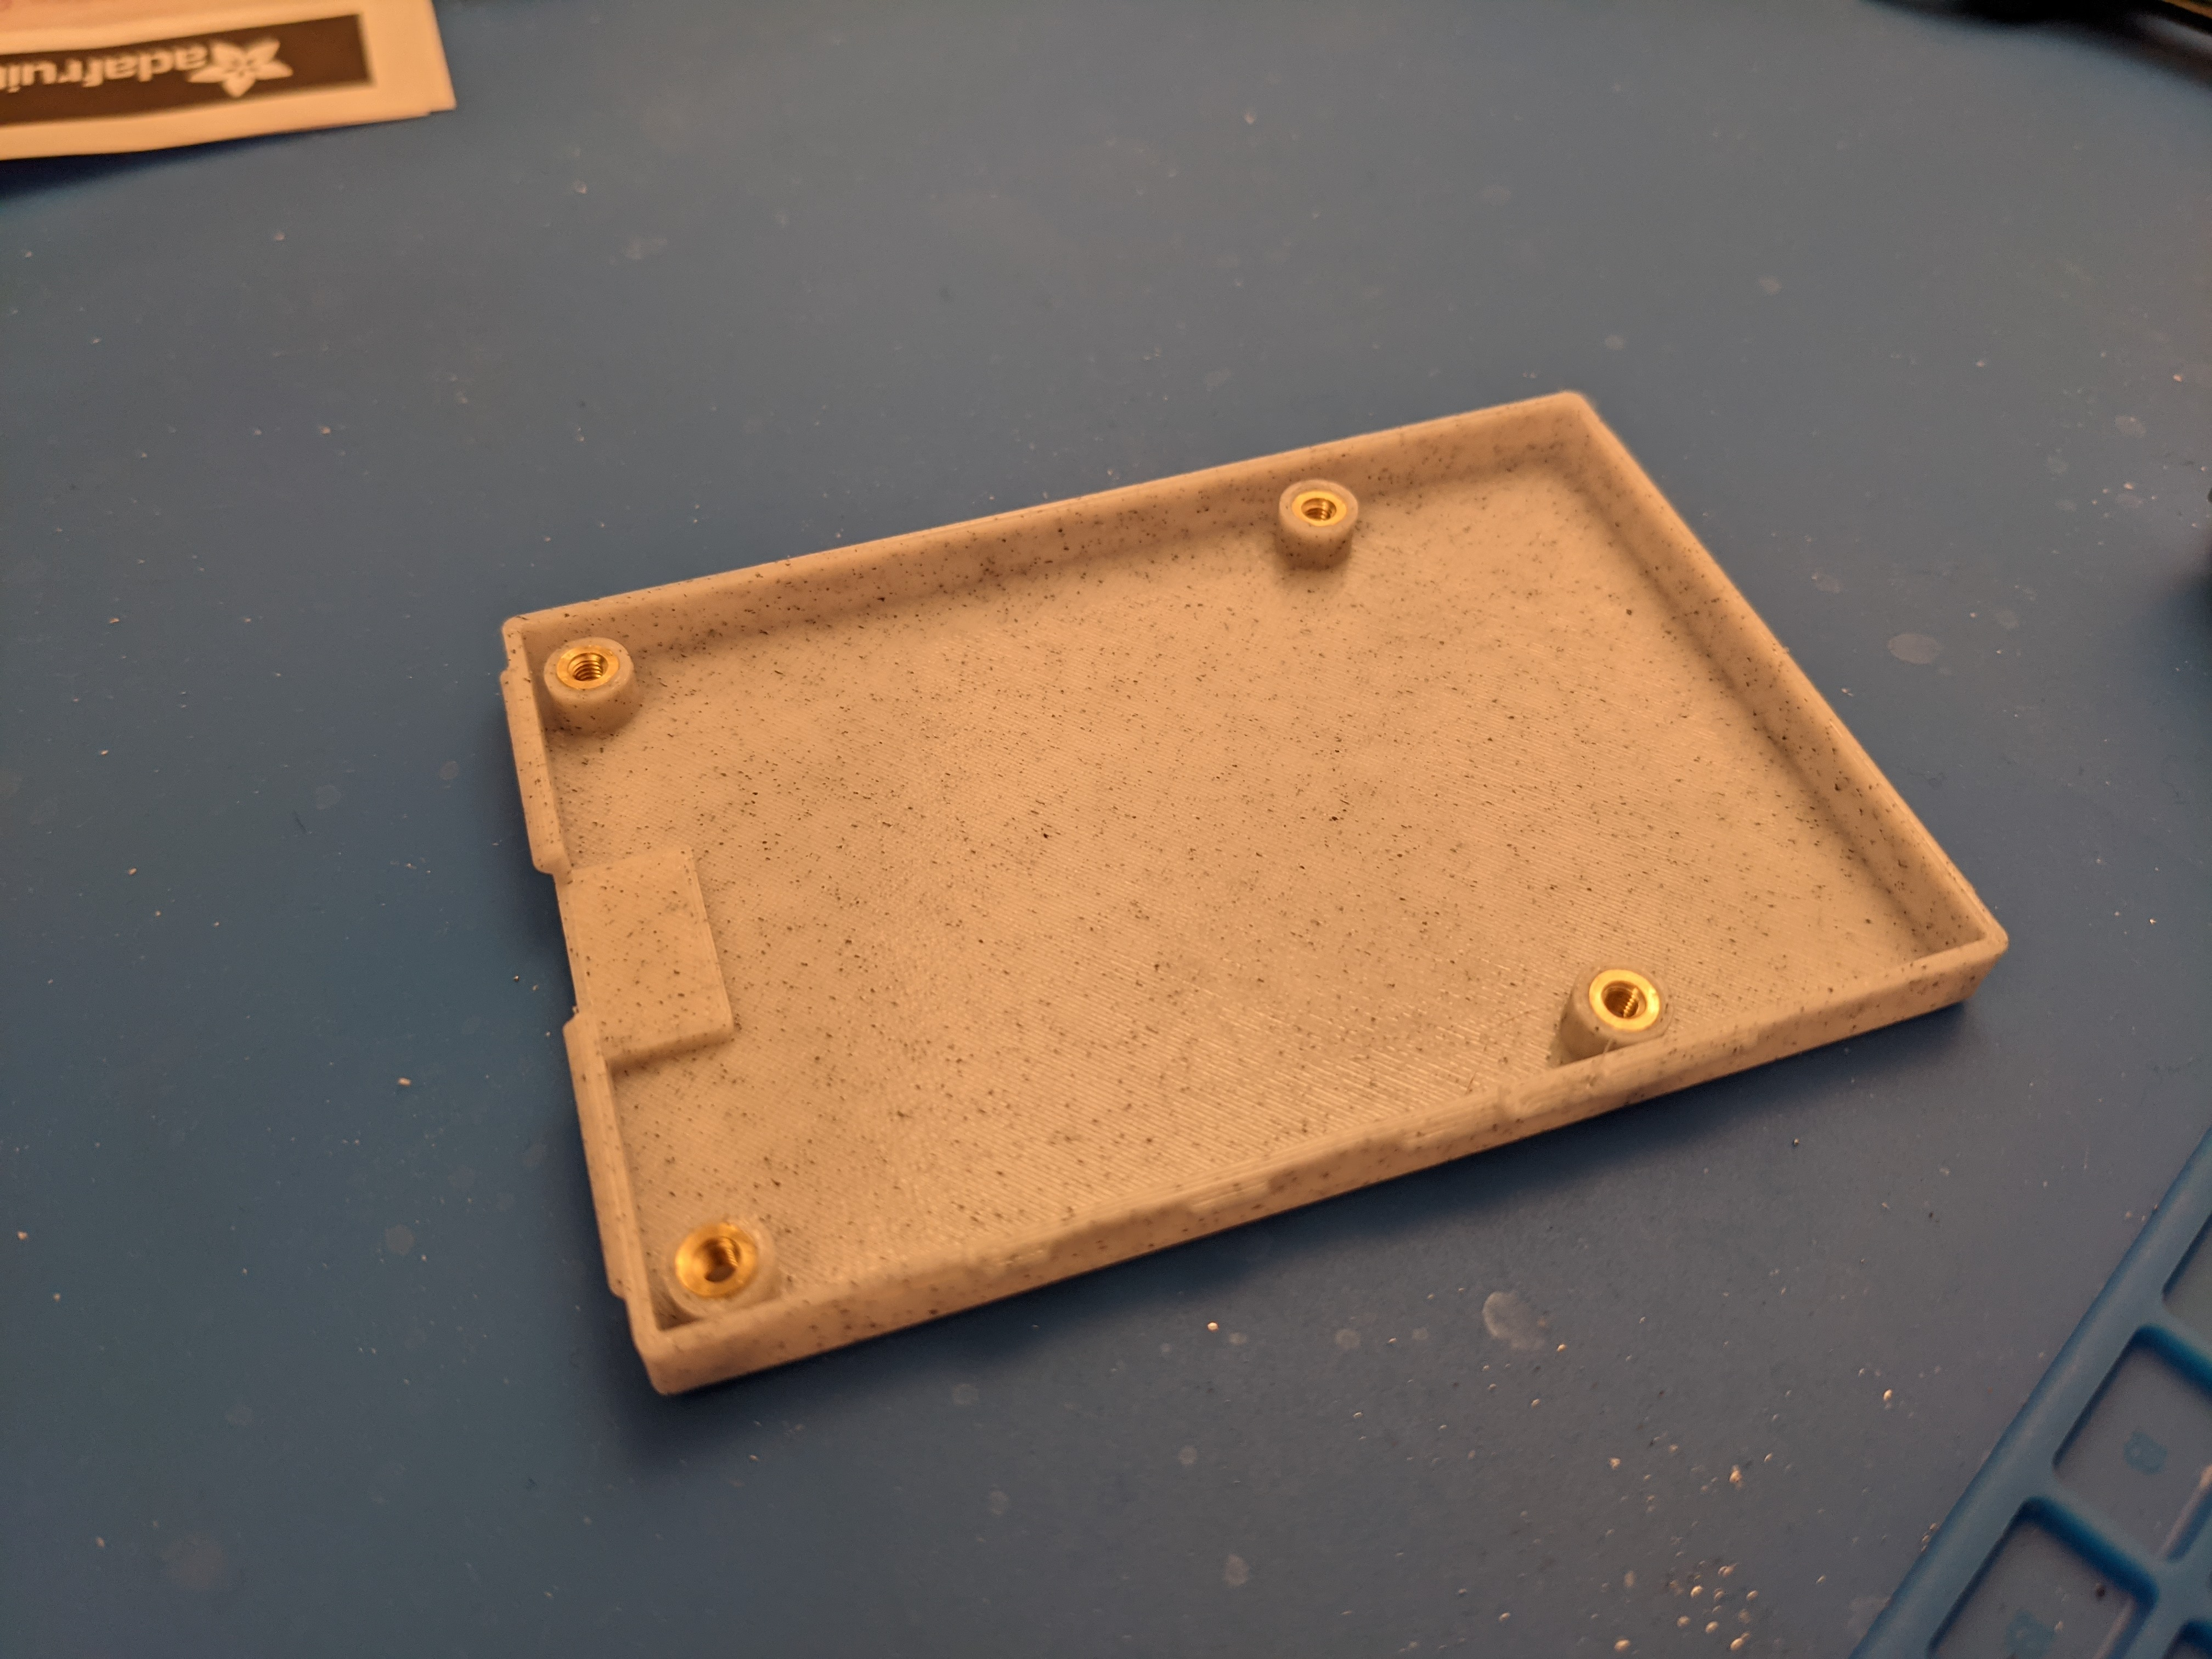 projects_PXL_20201217_151029824.jpg